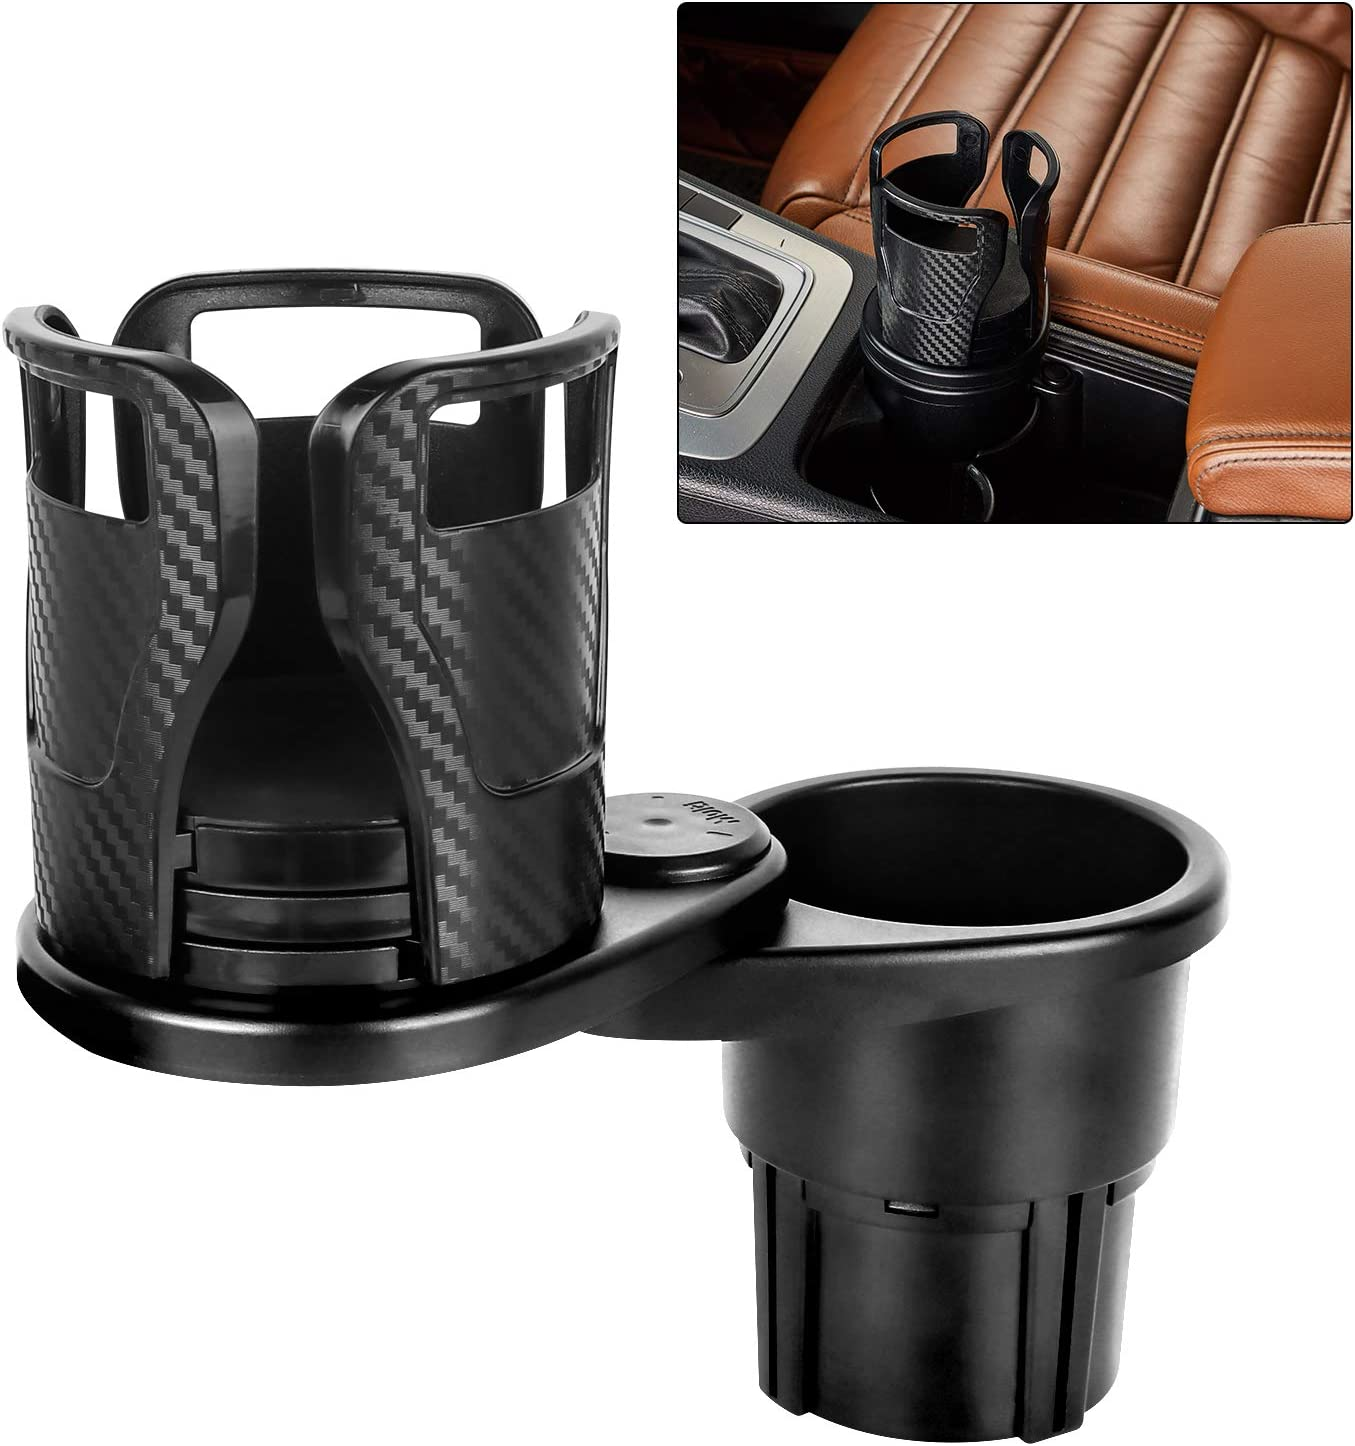 """Water Cup Holder for Car, Car Cup Holders 2 in 1 Multifunctional Expander Adapter with 360° Rotatable Base Fit for Hold Most 17oz - 20 oz Bottles Drinks Container Car Coffee up to 5.9"""" Inch"""